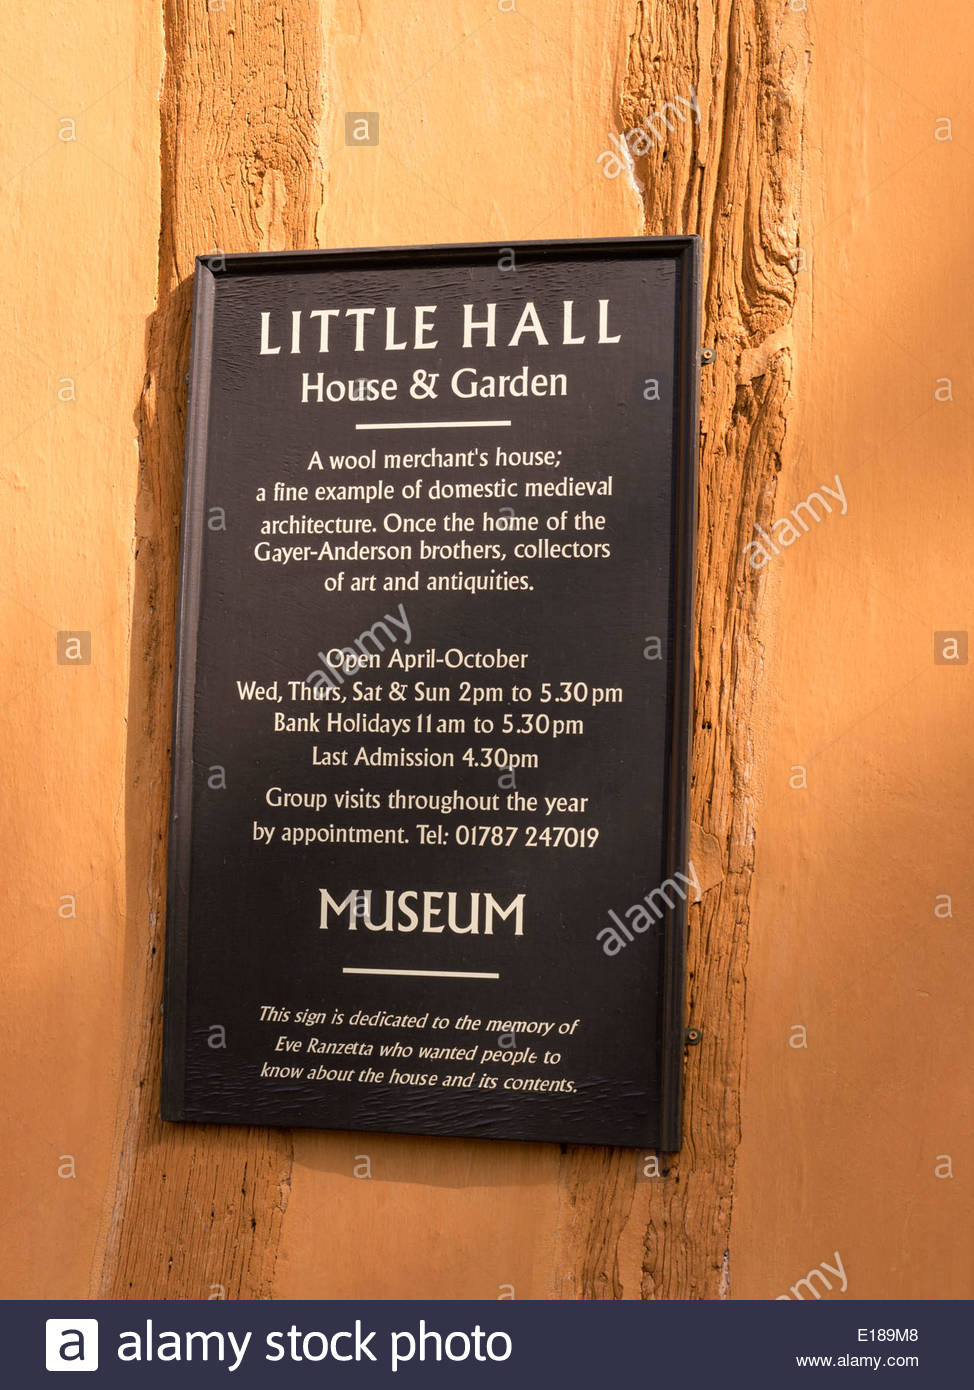 Sign outside the old Medieval half timbered oak post and beam house of Little Hall, Lavenham, Suffolk, England, UK - Stock Image